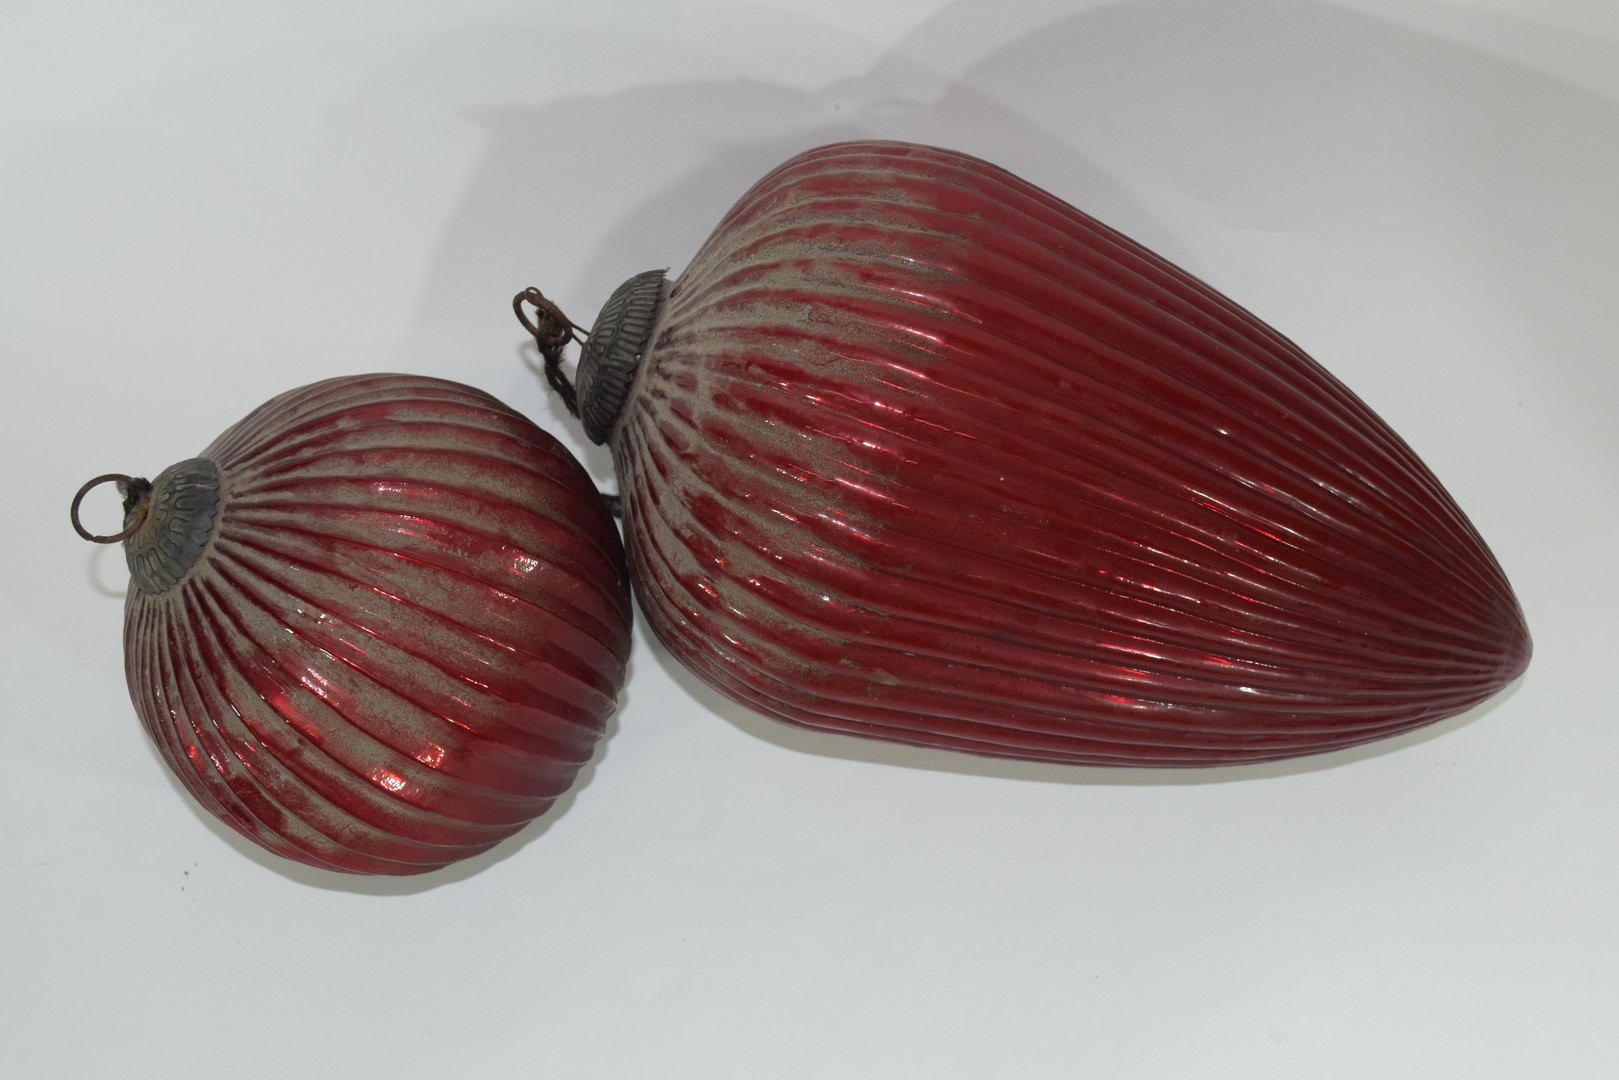 Two red glass Oriental lanterns - Image 2 of 3